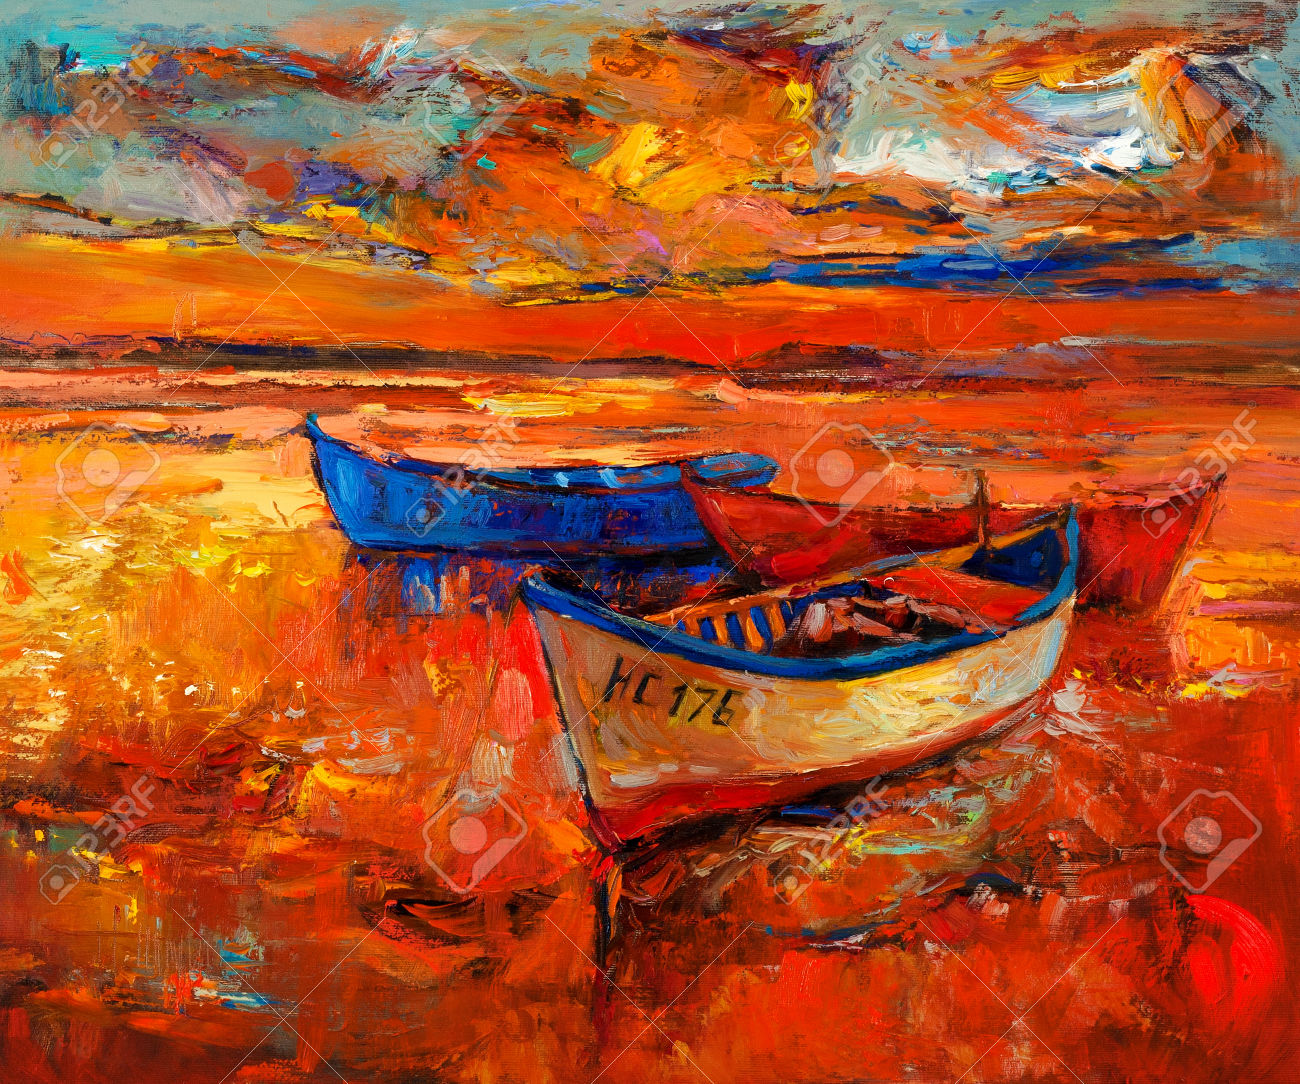 23177830-Original-oil-painting-of-boats-and-sea-on-canvas-Sunset-over-ocean-Modern-Impressionism-Sto